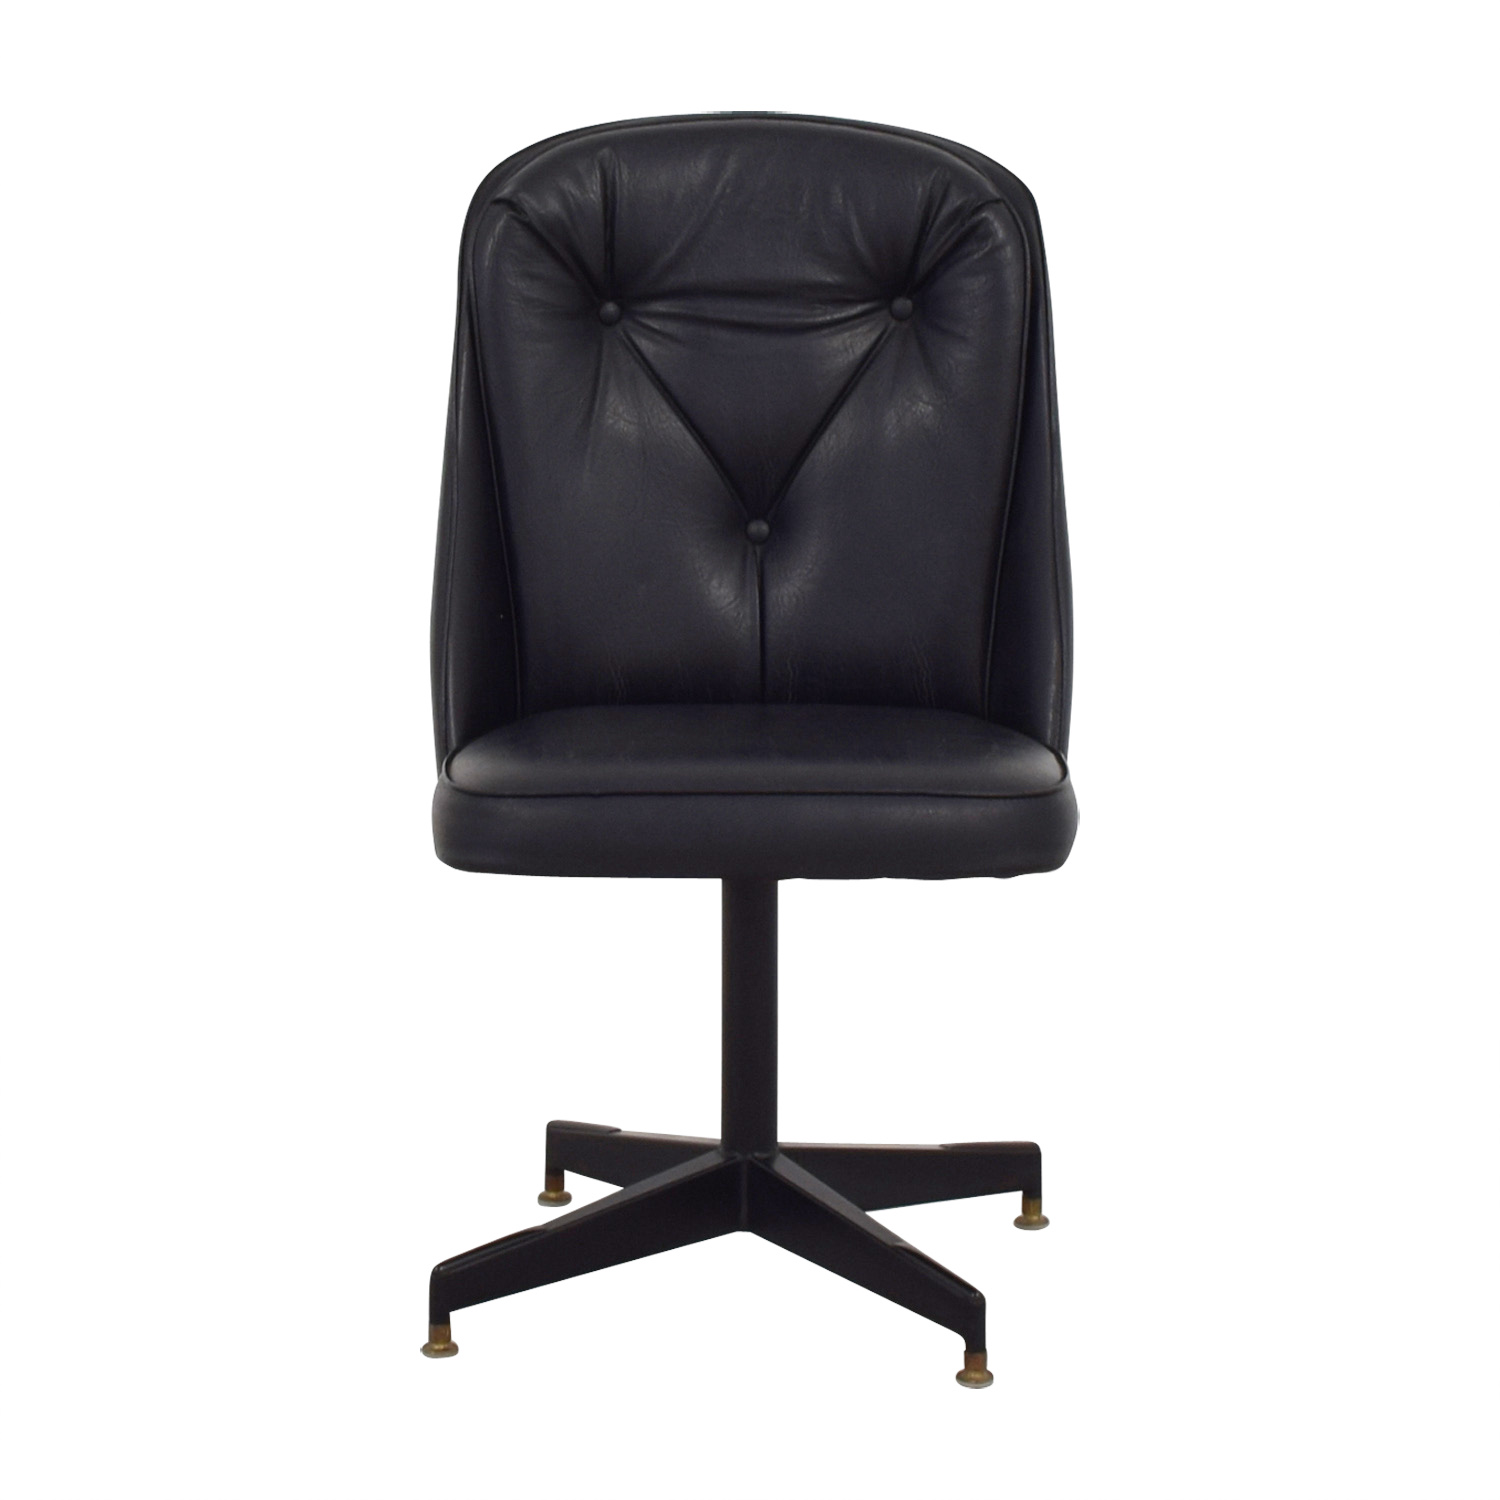 Black Leather Swivel Office Desk Chair on sale